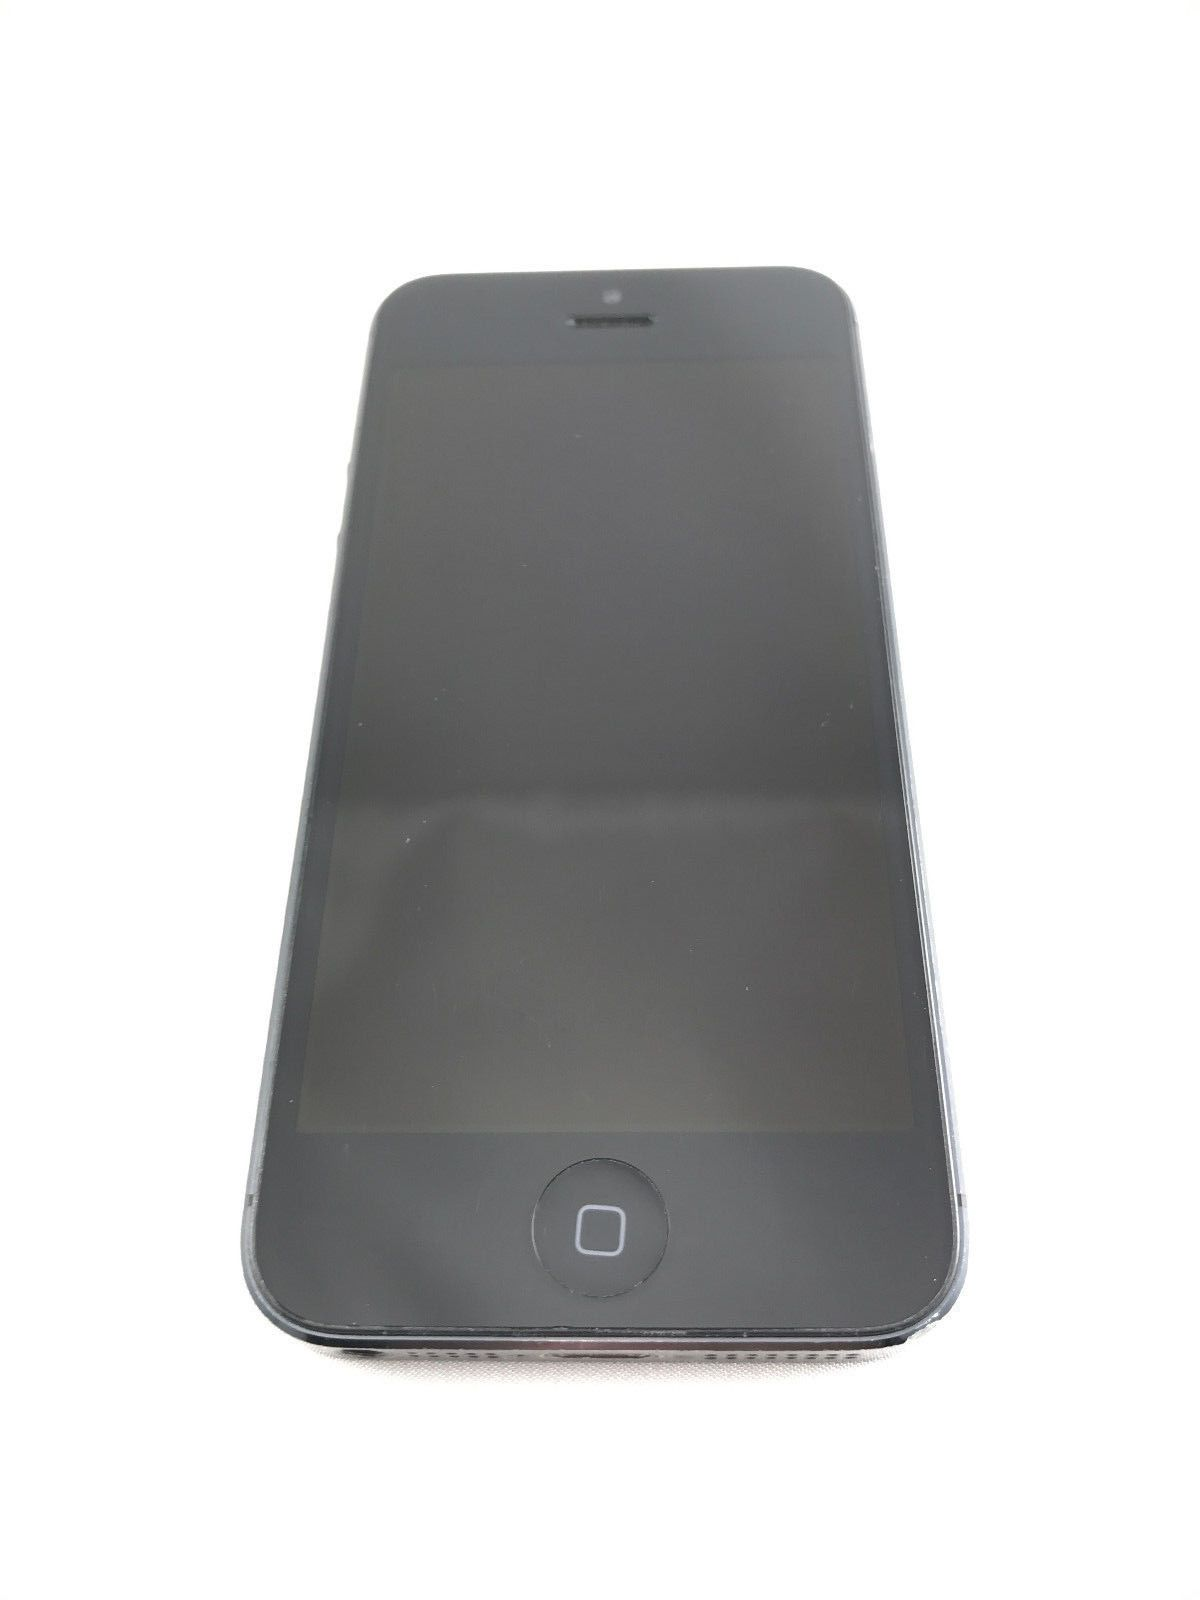 Apple iPhone 5 16GB A1428 at&t FAIR TO GOOD VOL DOWN BUTTON PROBLEM